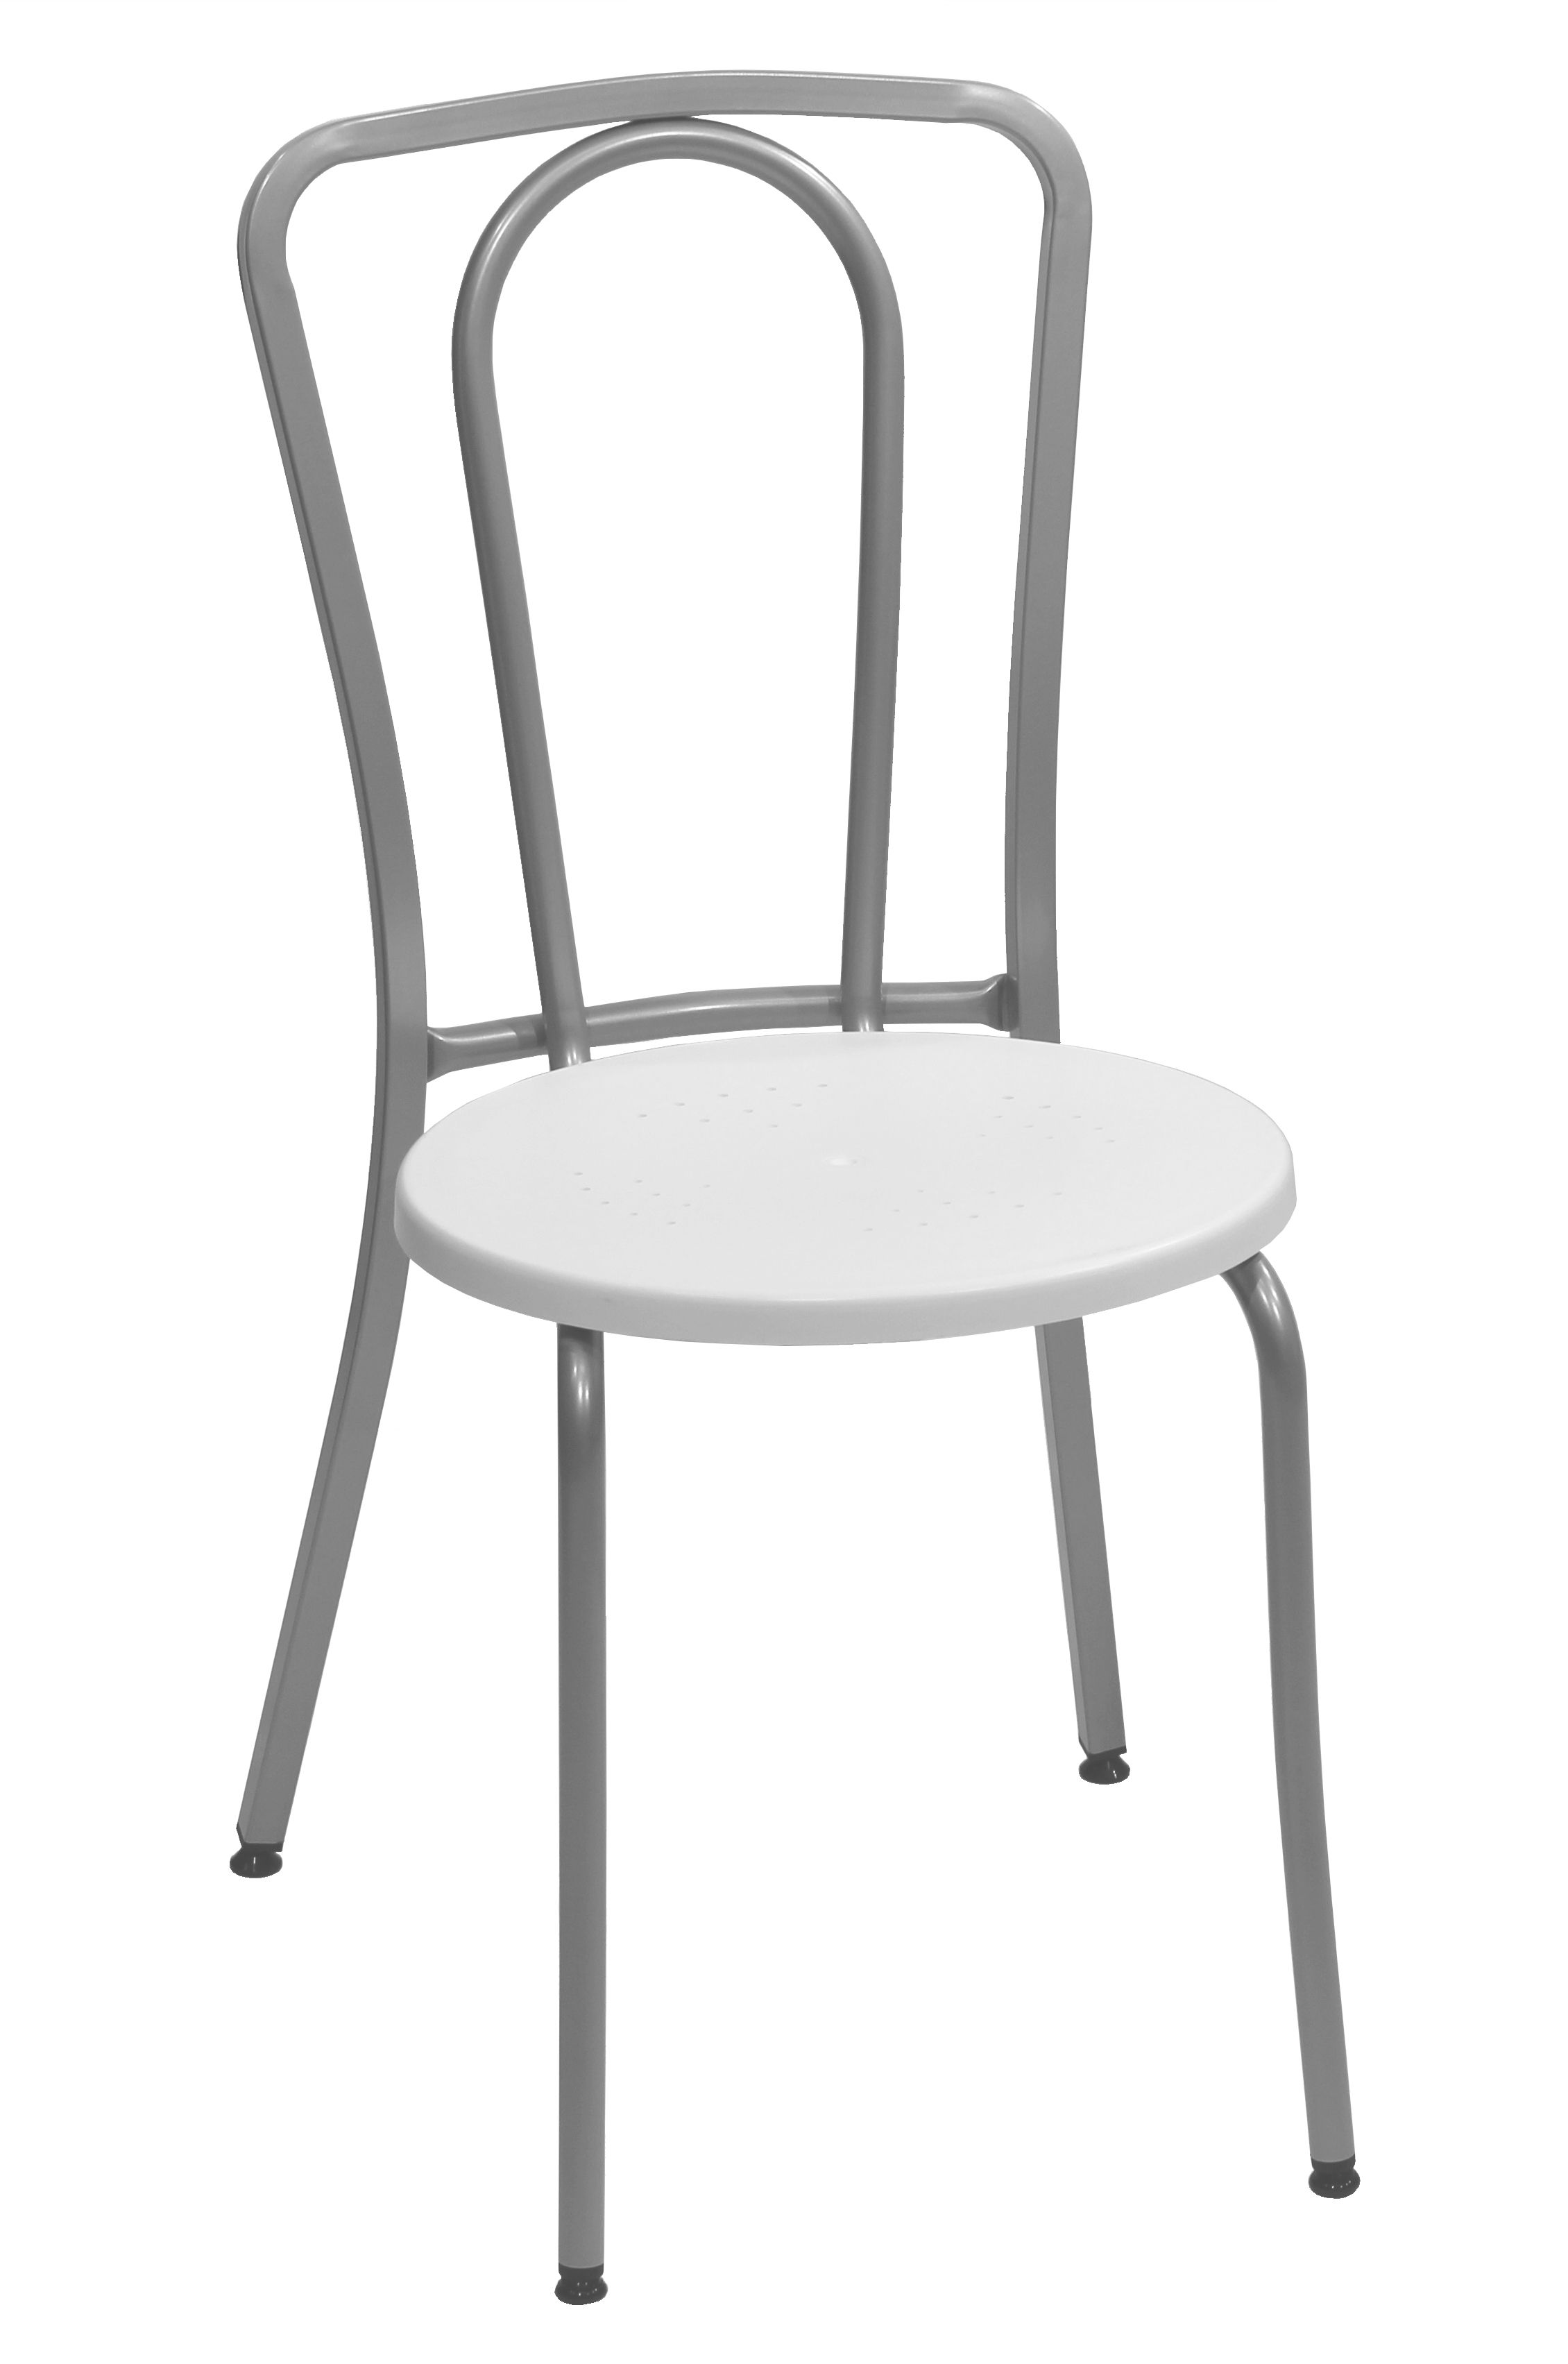 Chaise Terrasse Restaurant Chaise Bistro 2010 Assise Moderne Blanche Chaise Chair